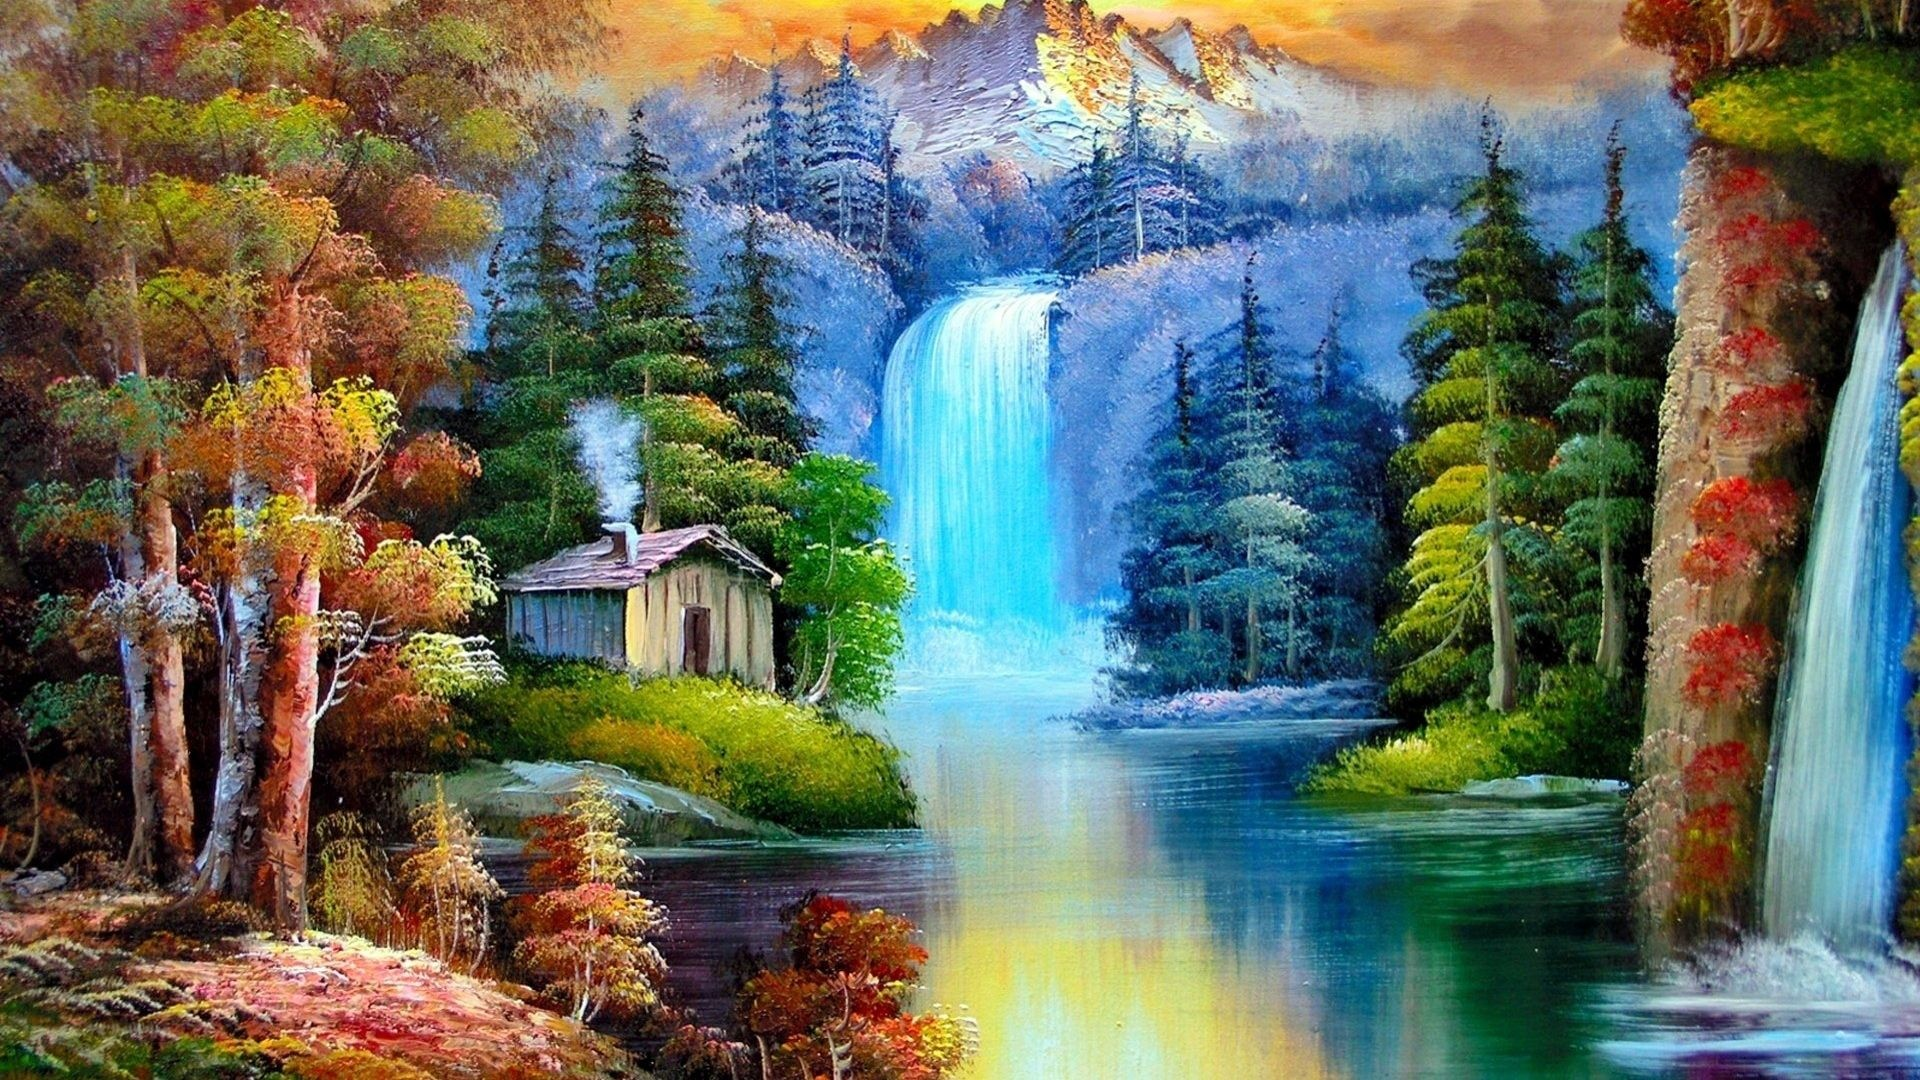 1920x1080 Download Waterfall Colorful Nature Painting Tree Waterfalls Animated Desktop  Wallpaper For Windows 7